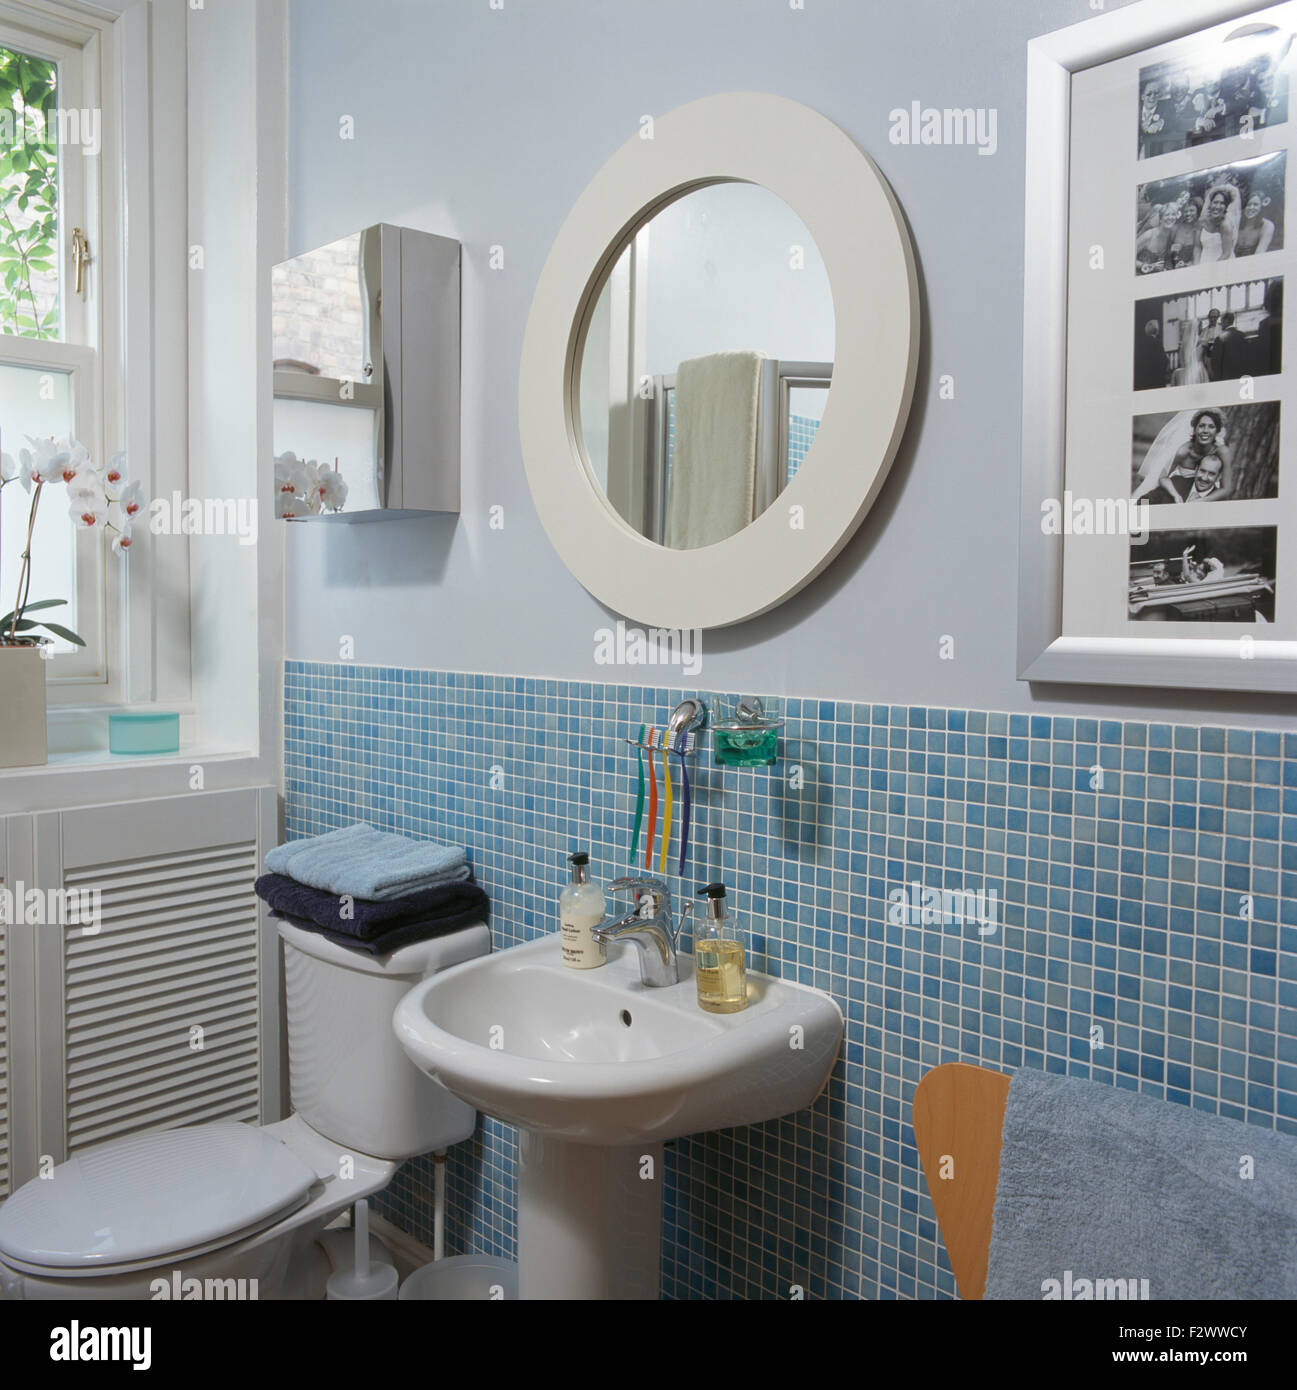 Circular white mirror above basin in modern bathroom with light blue ...